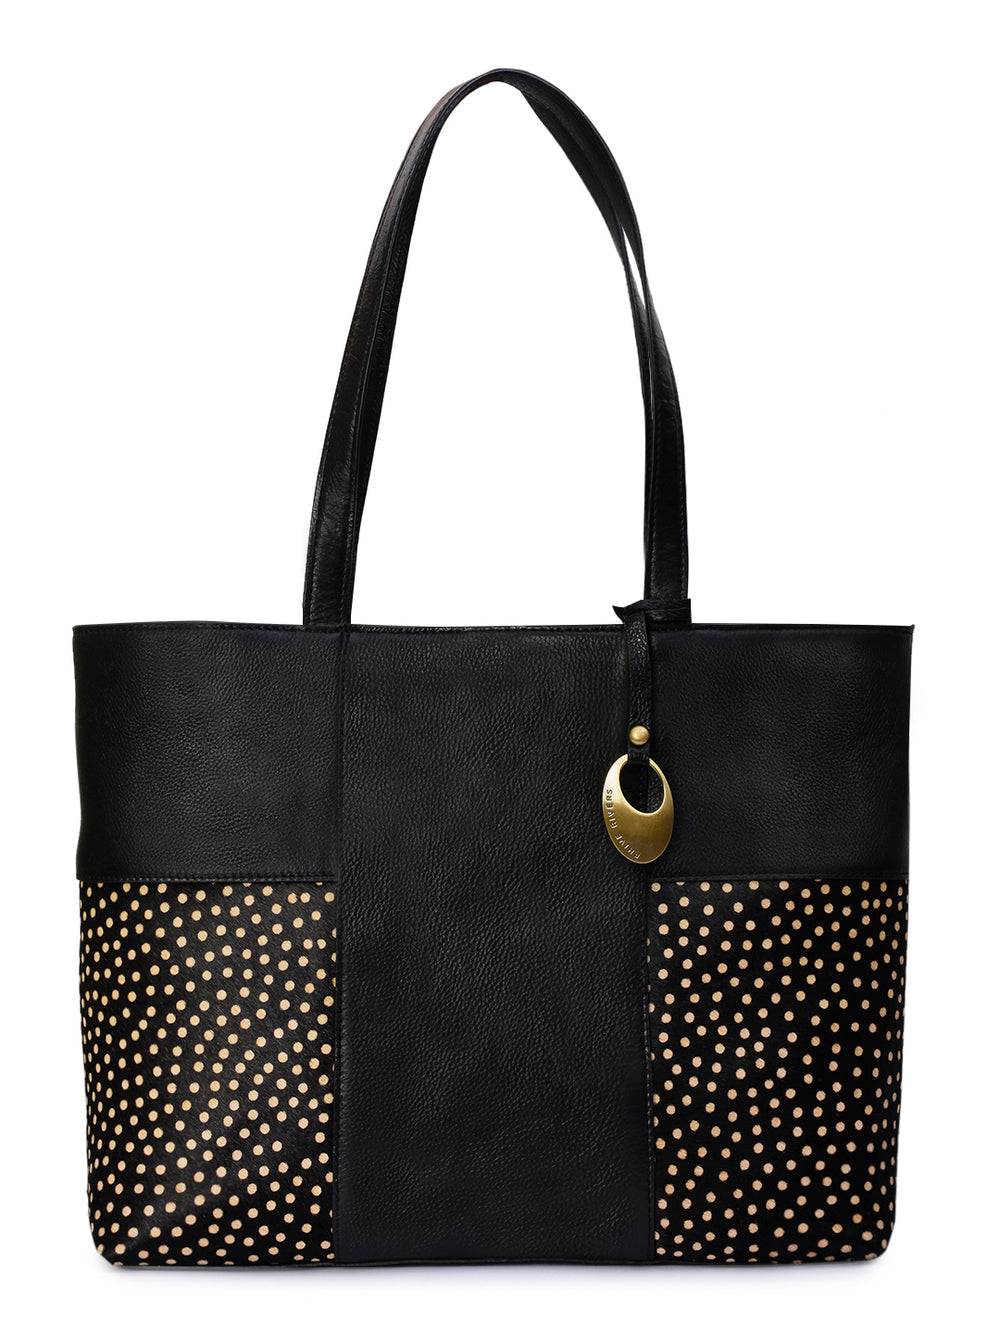 PRU1347-Phive Rivers Women's Leather Tote Bag -PRU1347-Home > Bags > Handbags-Phive Rivers-Faeshon.com